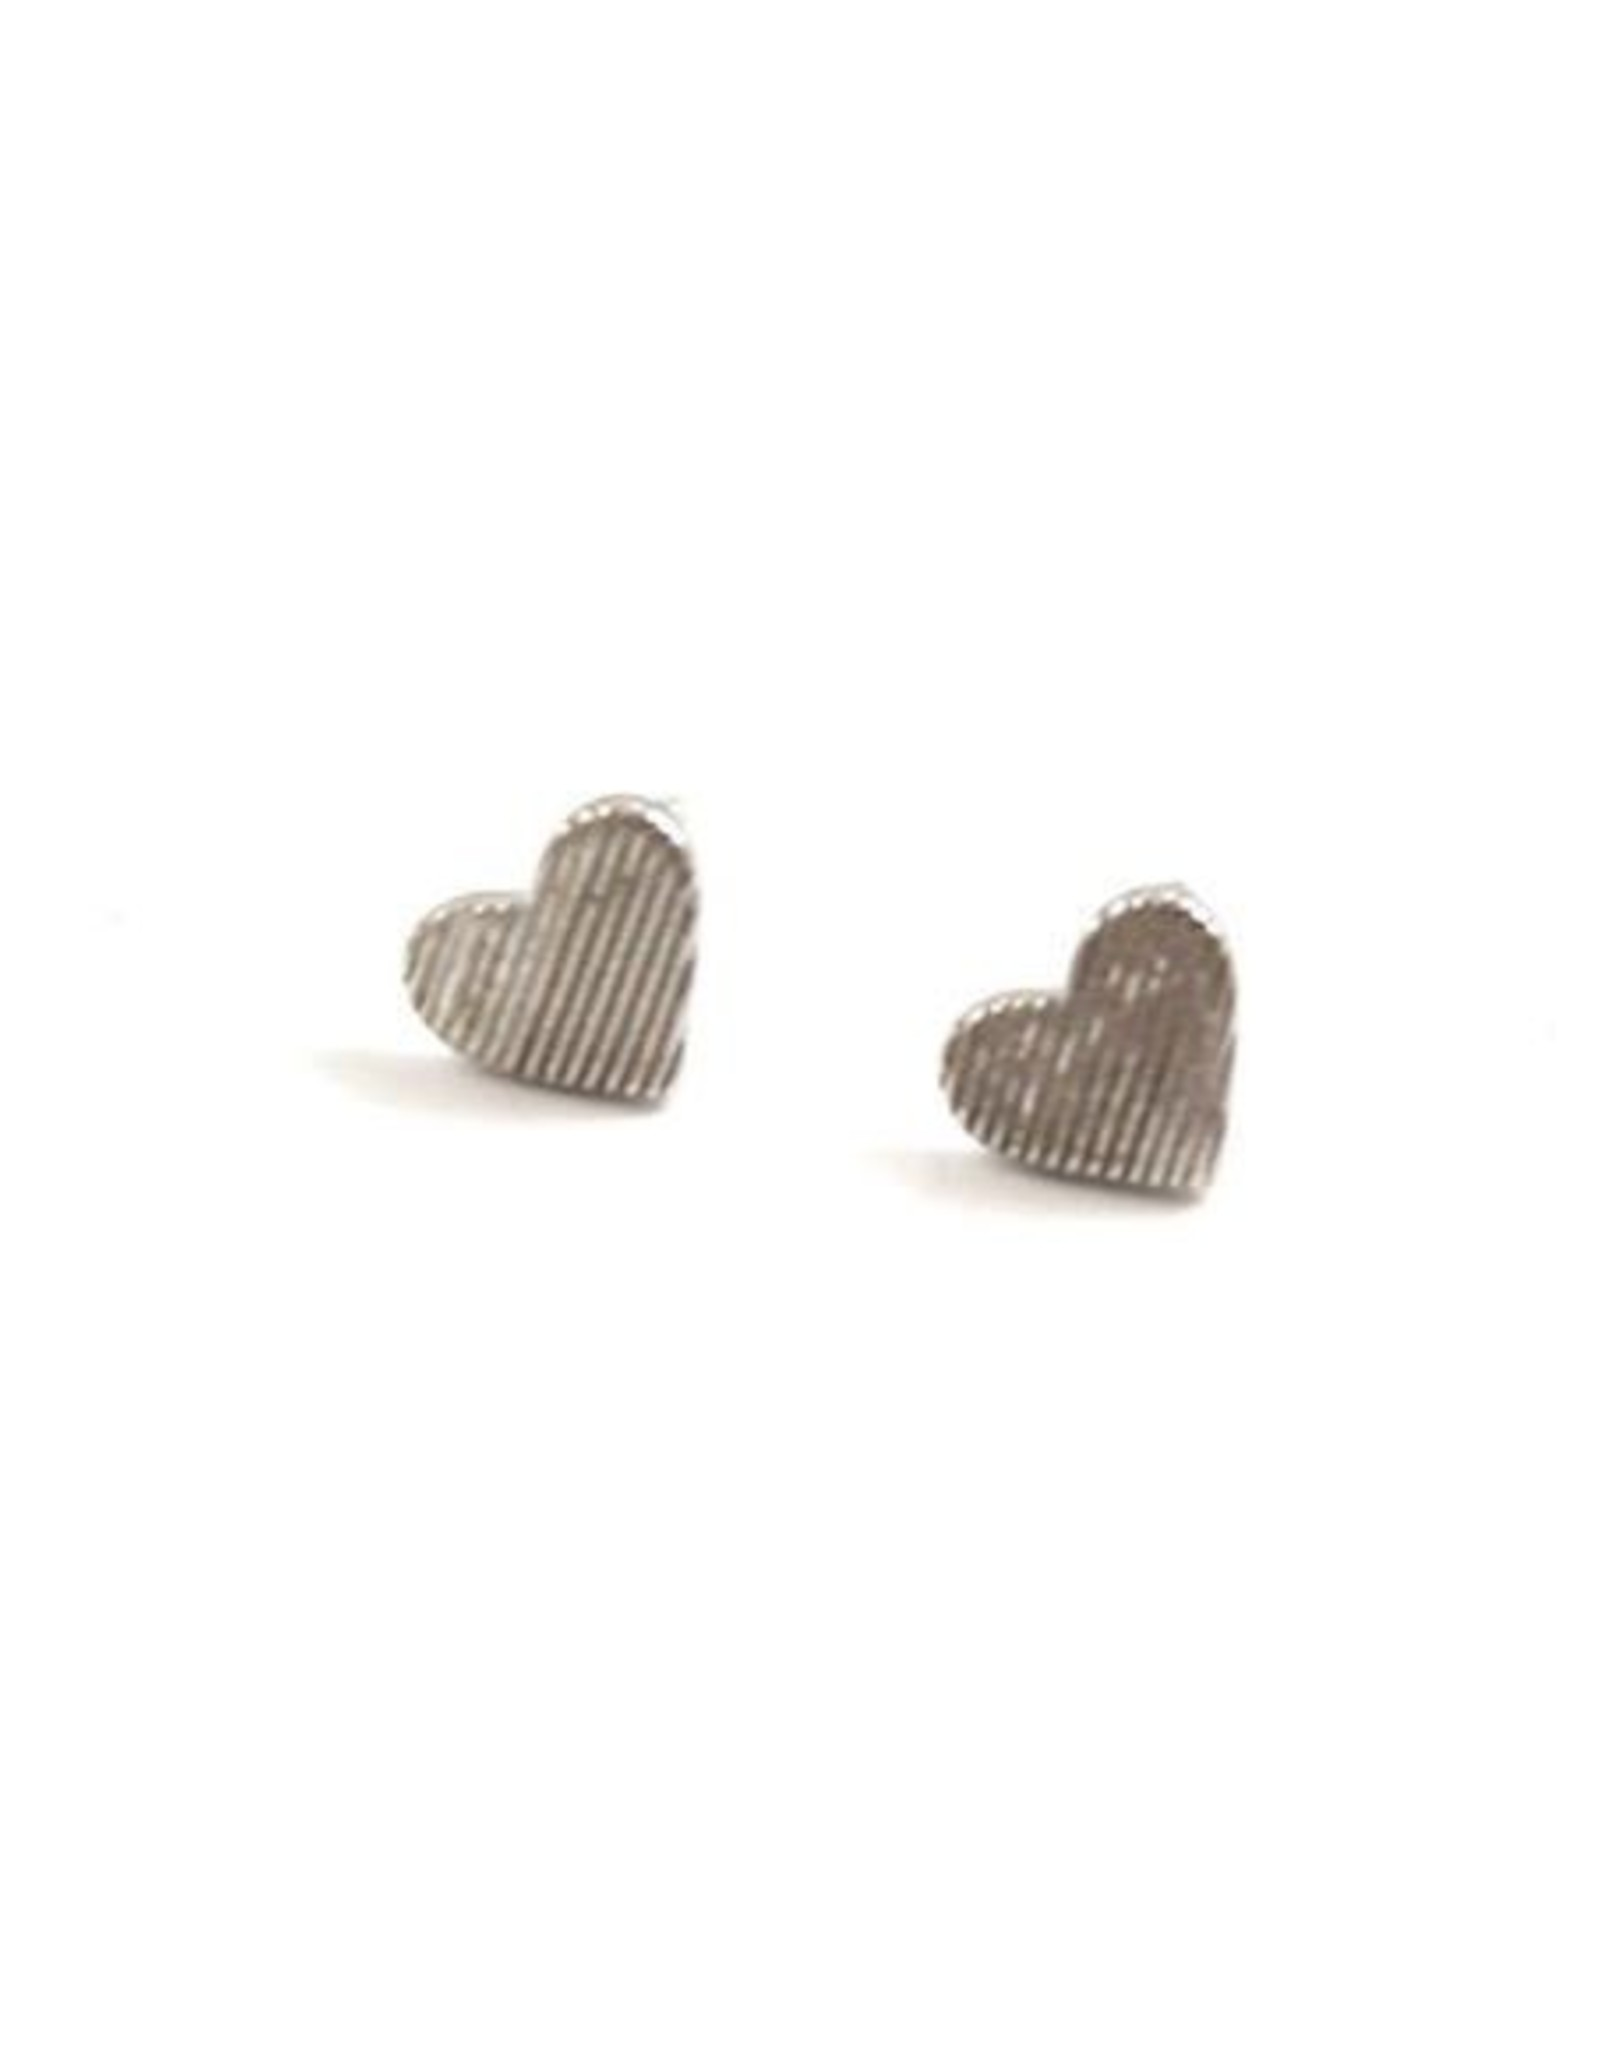 f.y.b. f.y.b. - Earrings Heart Studs Silver